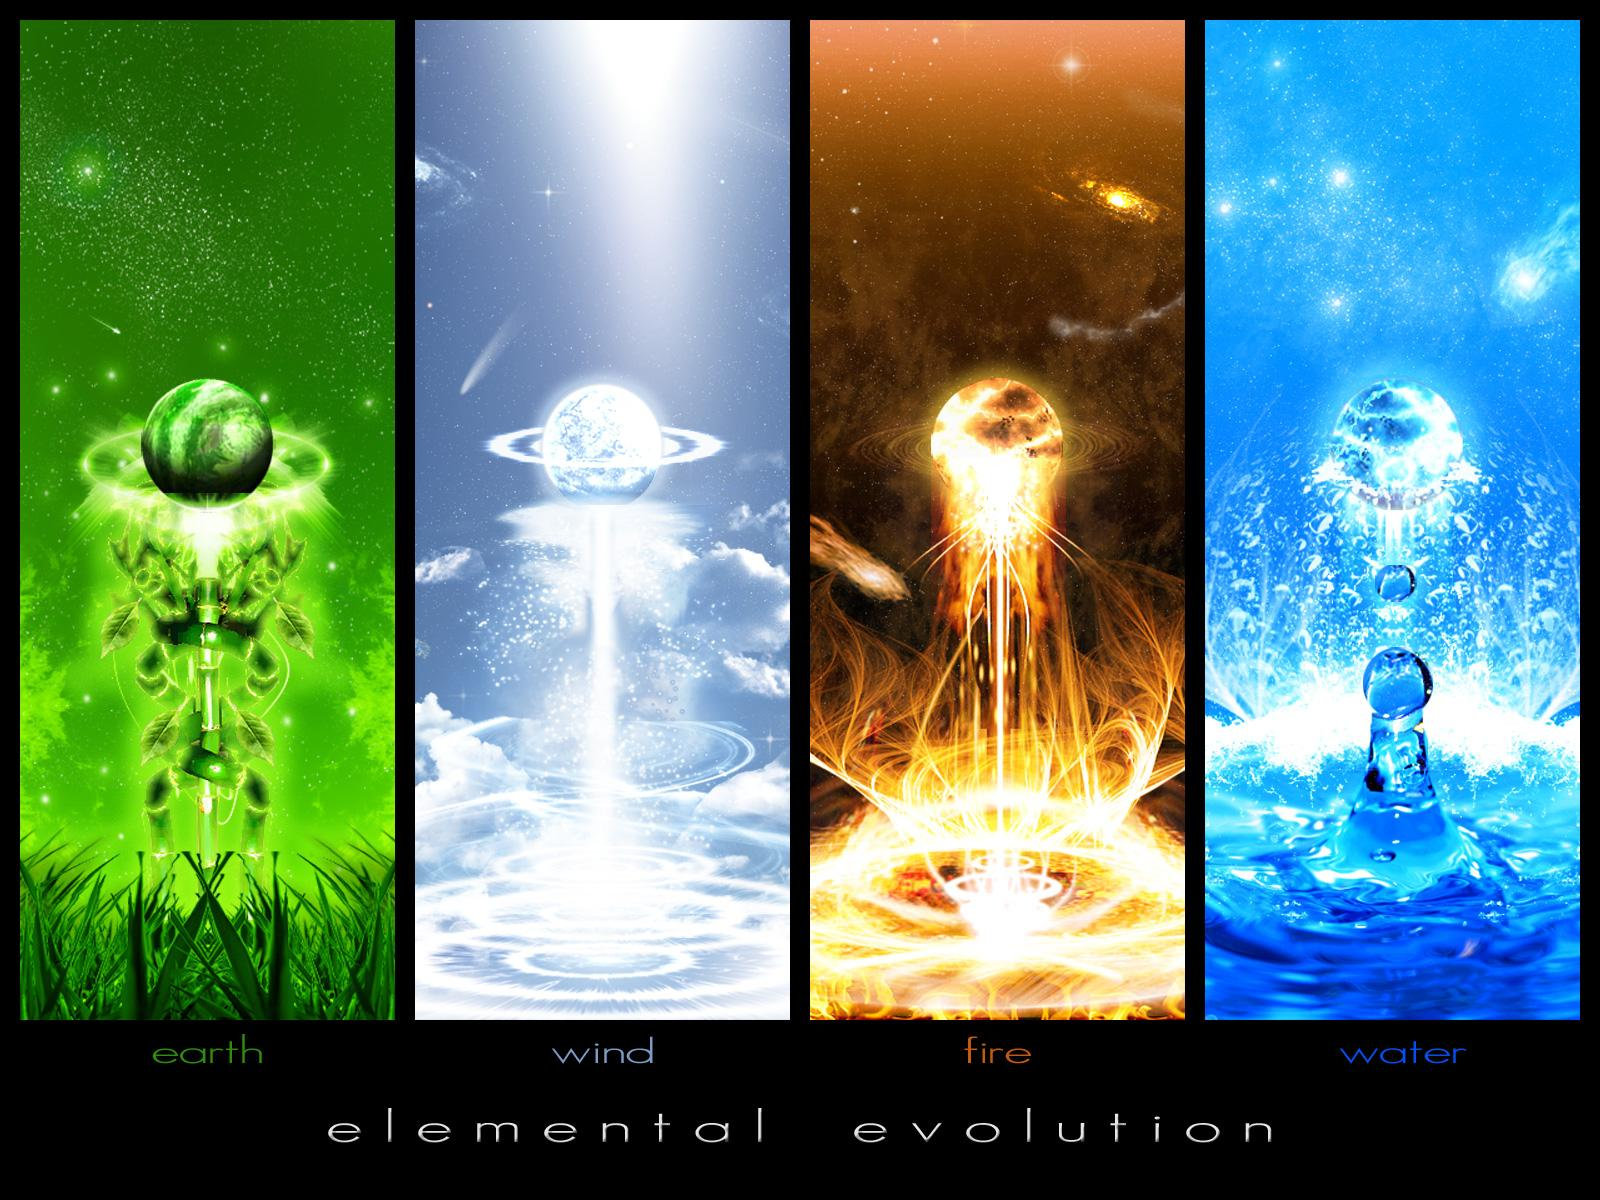 elemental_evolution_bdotwardlike_theelem